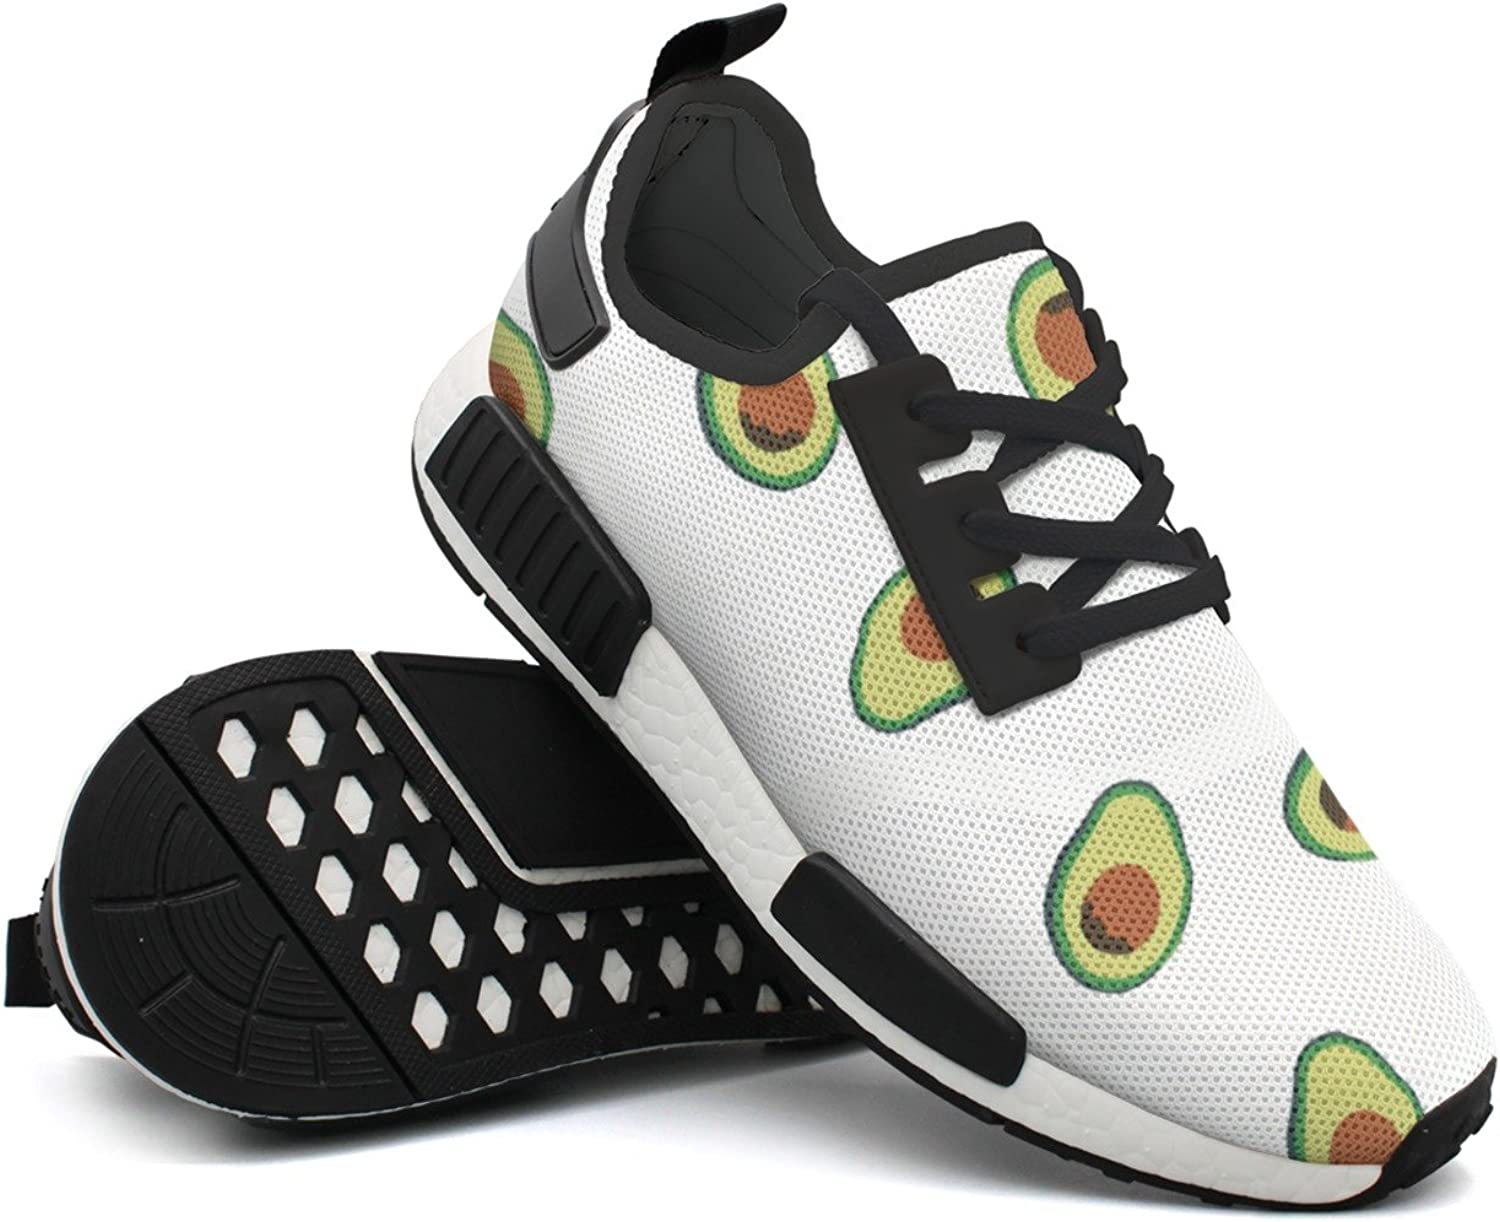 Fashion Sneaker For Men Cute Avocado colorful Lightweight Breathable Mesh Mens Running shoes